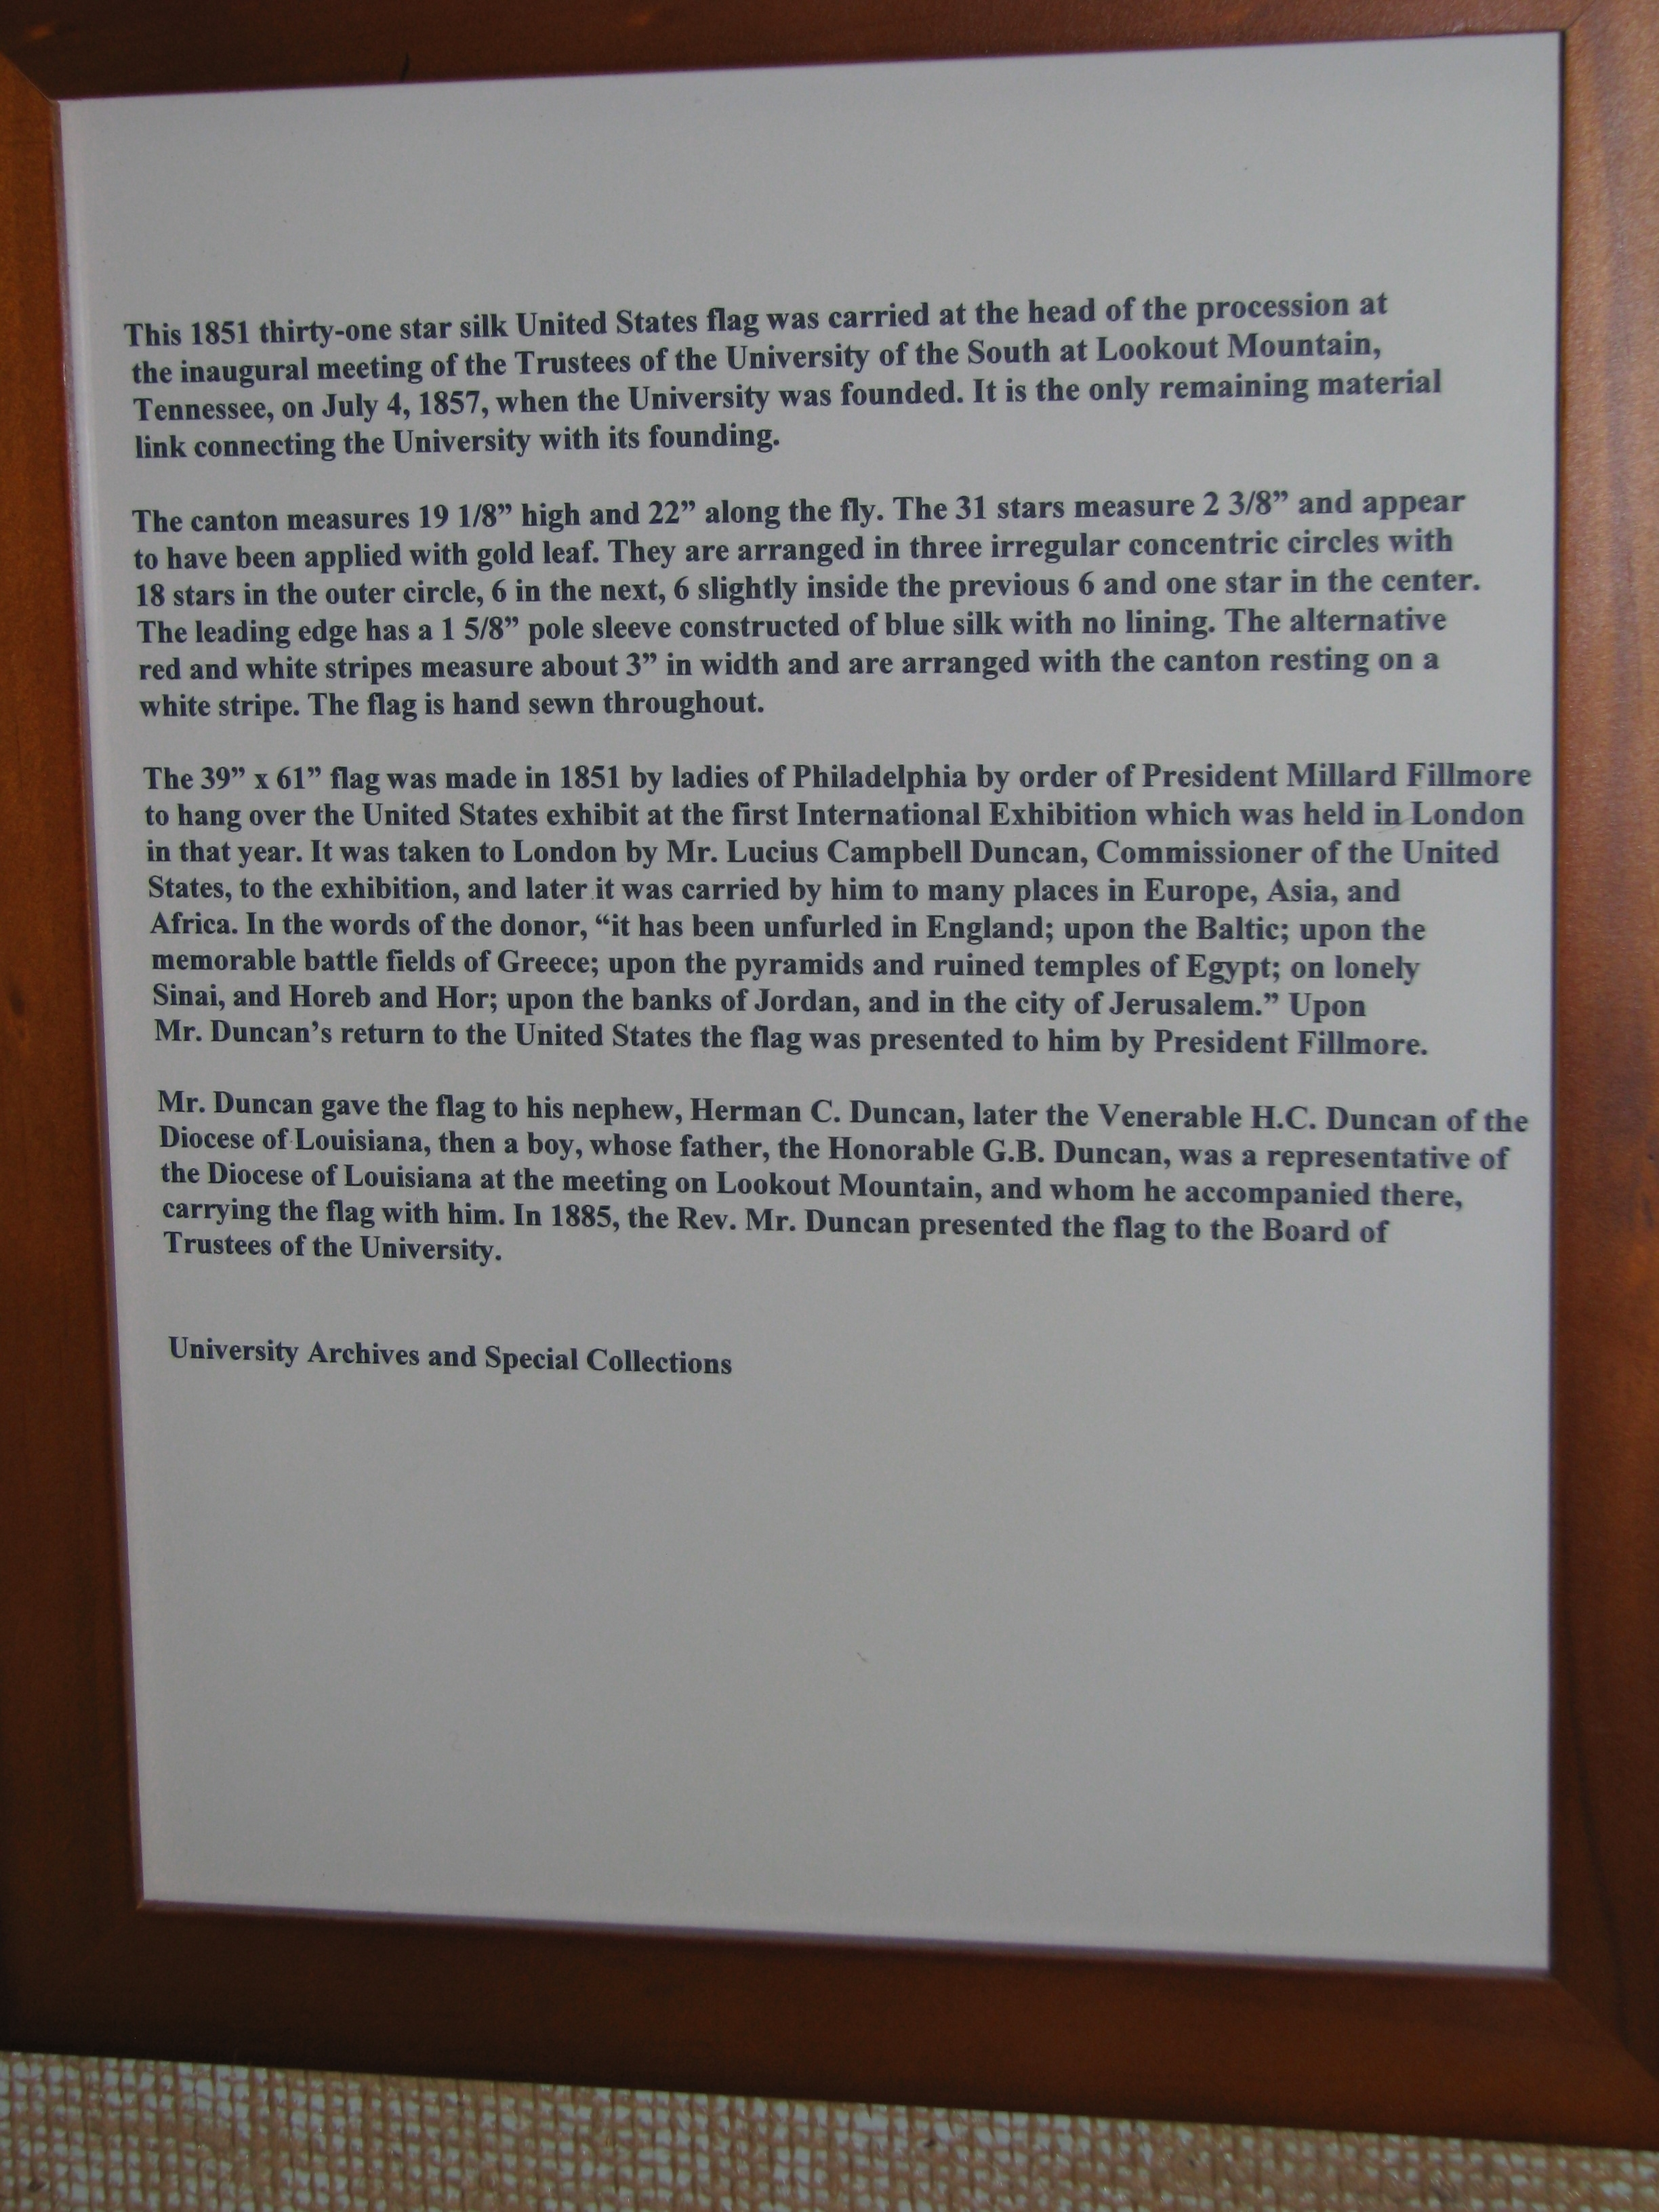 Informational page about the 1851 31 Star Flag in the University of the South Library